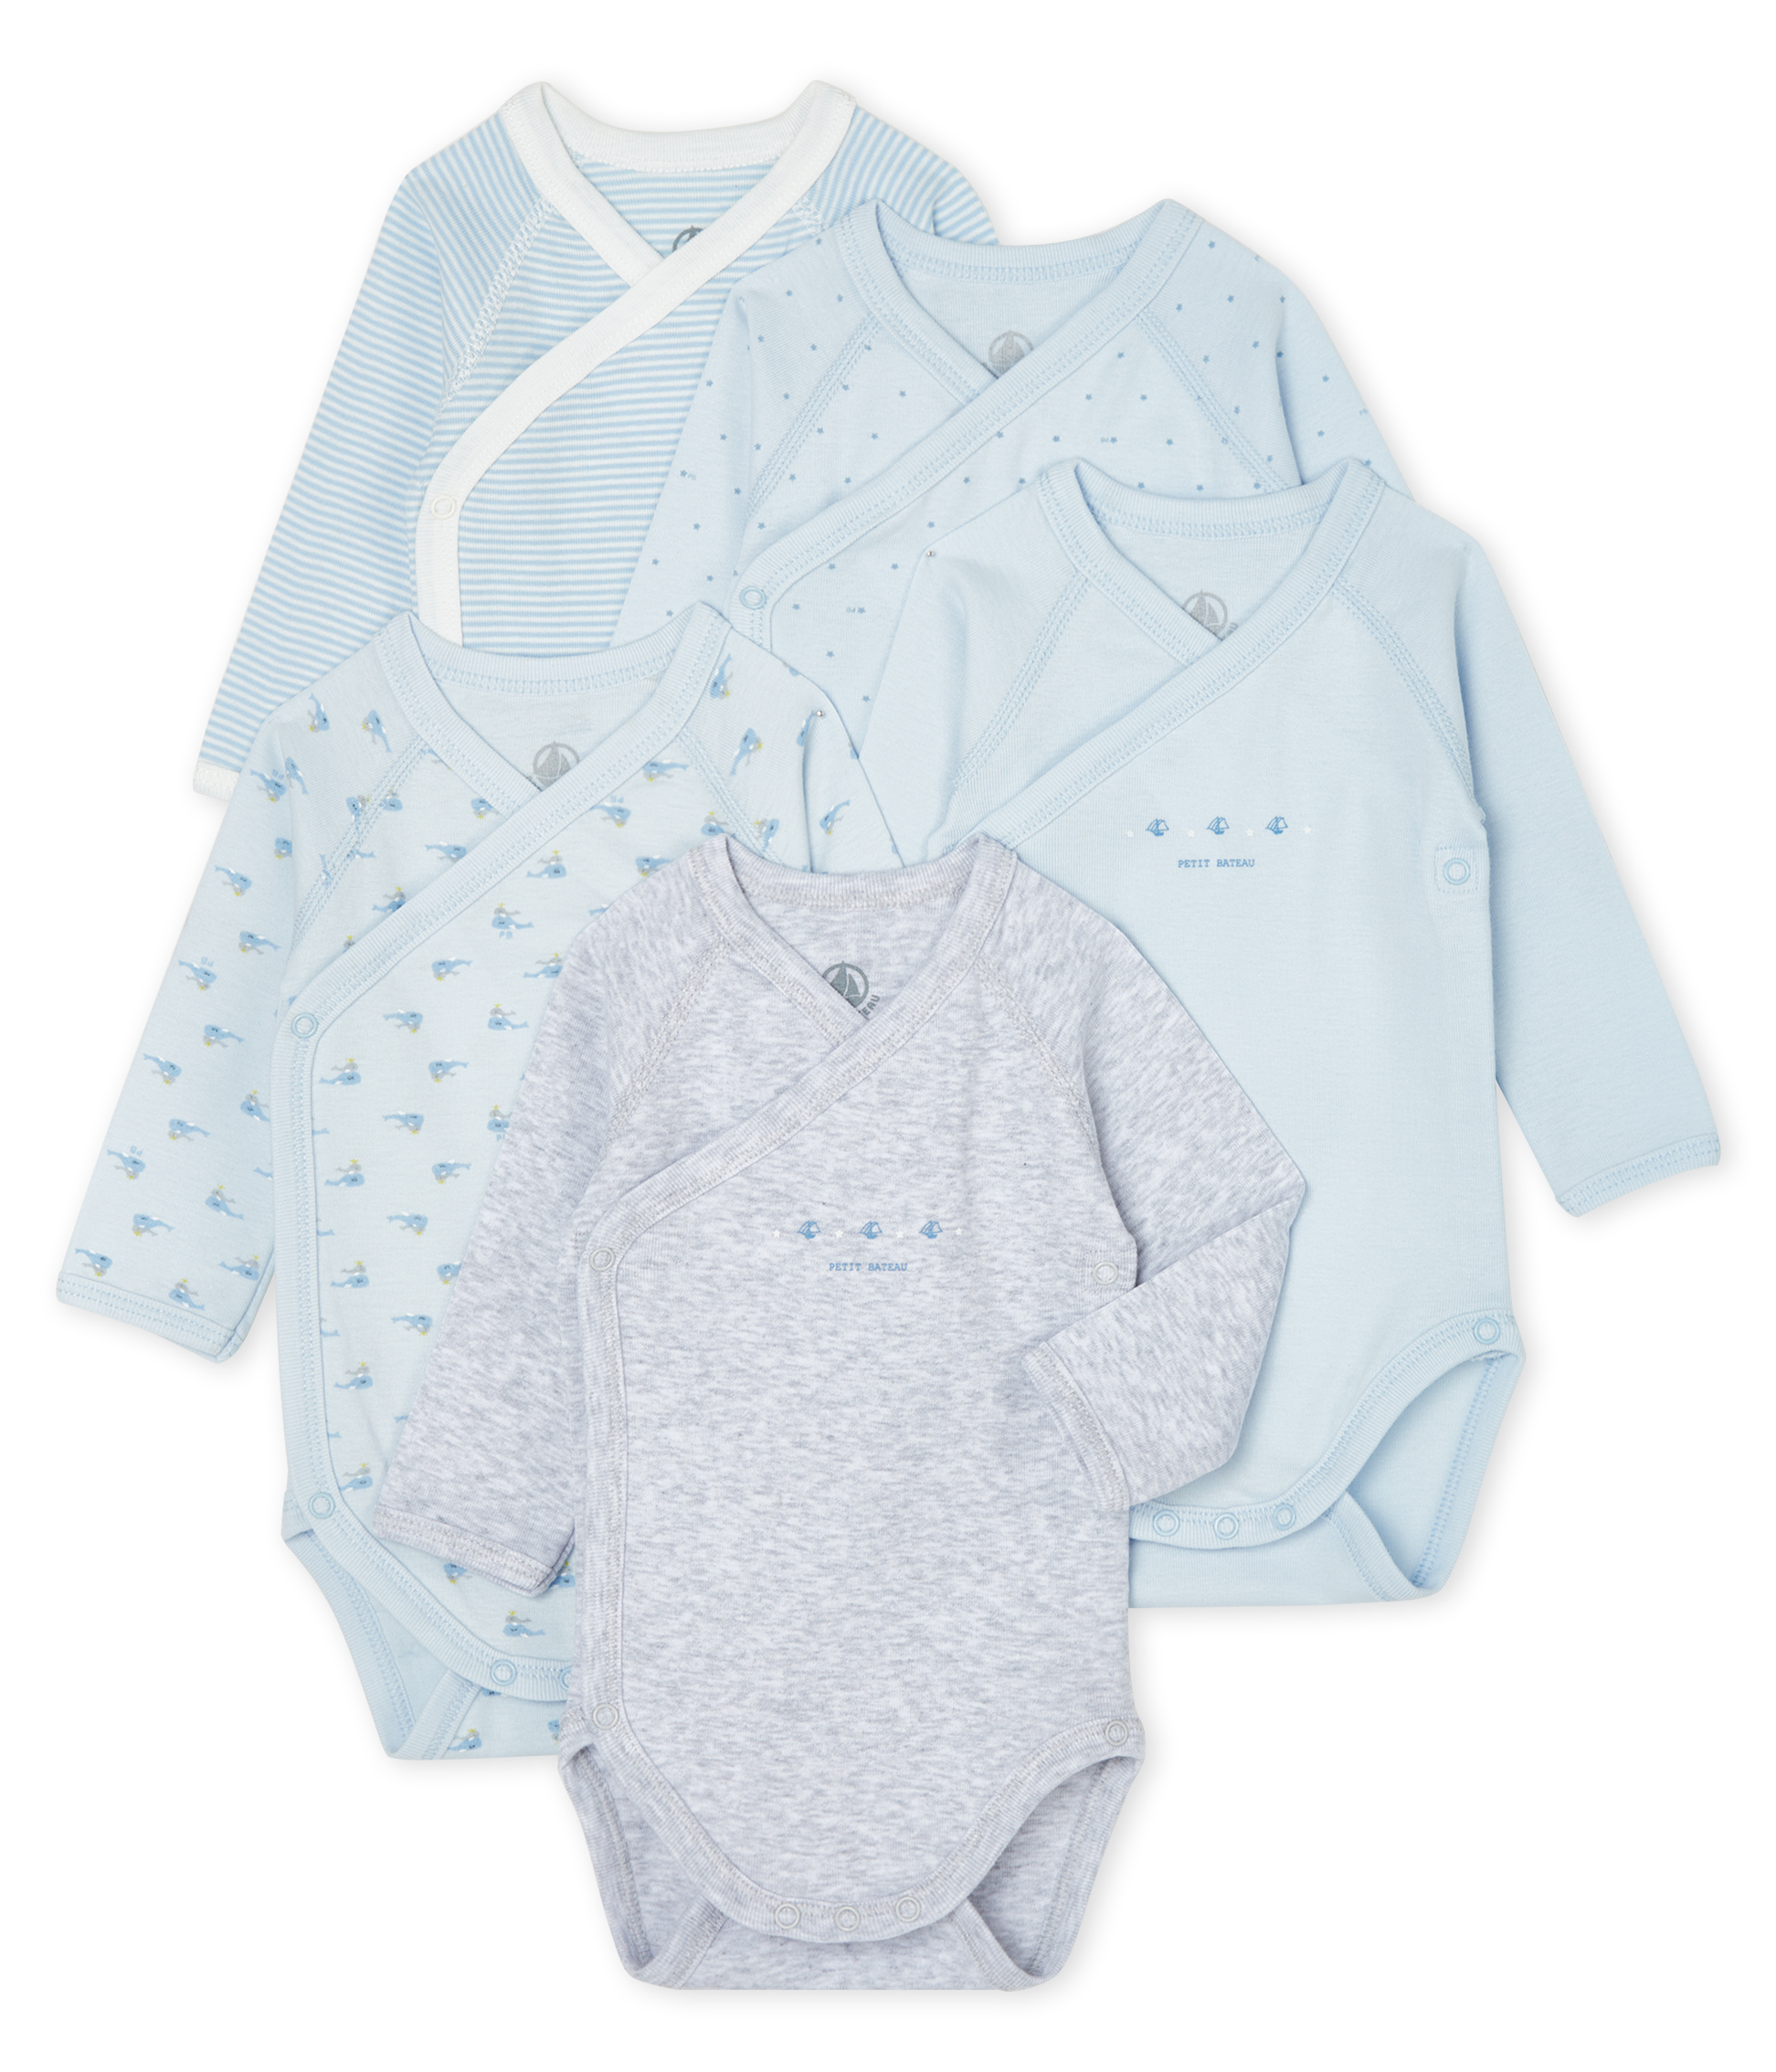 Newborn Babies' Long-Sleeved Bodysuit - 5-Piece Set